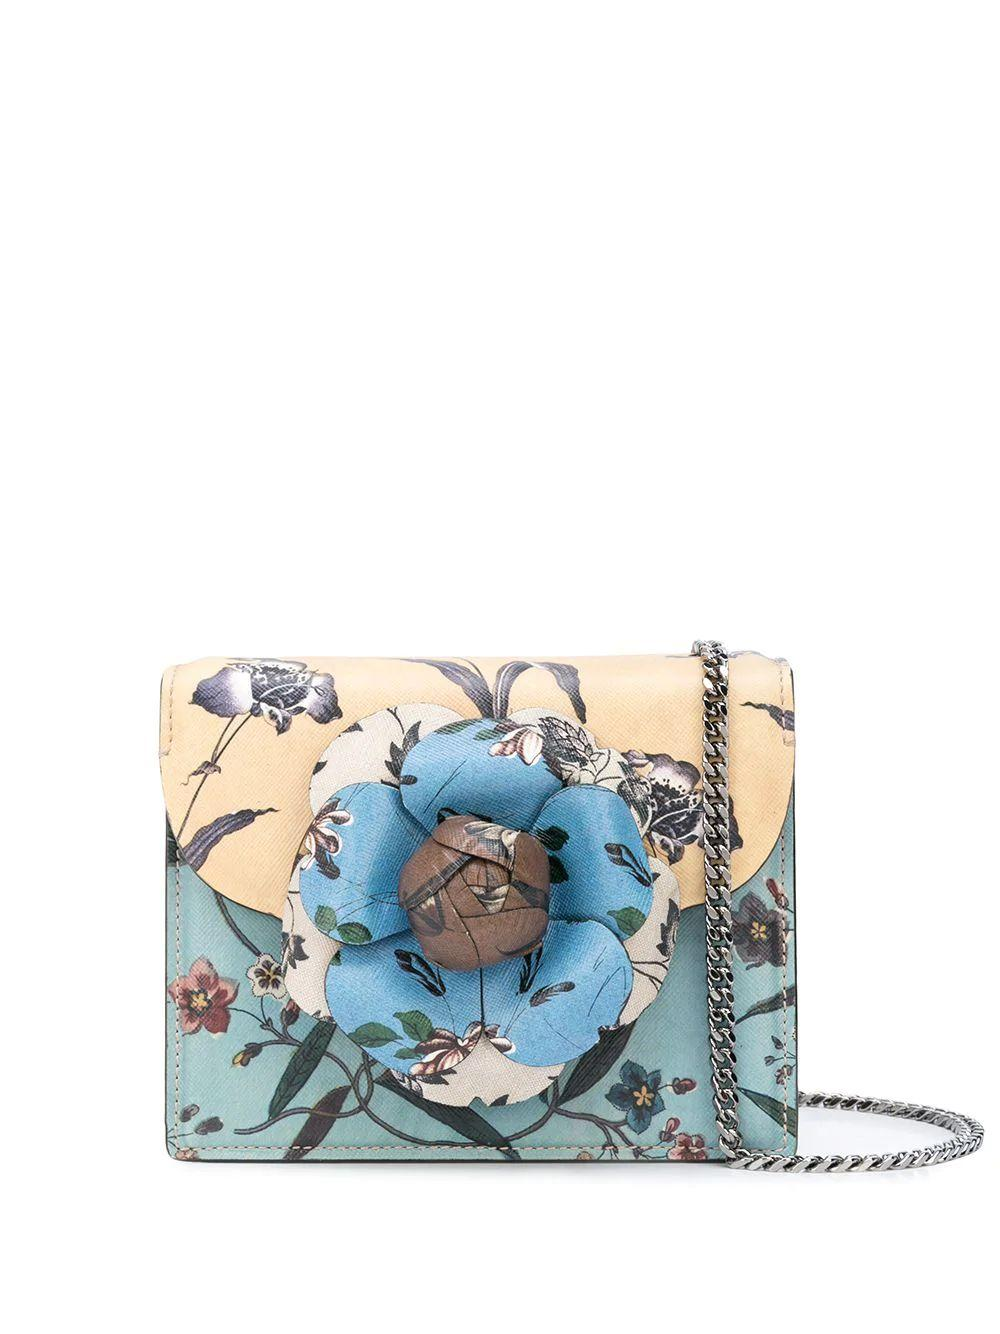 Mini Tor Printed Saffiano Bag With Chain